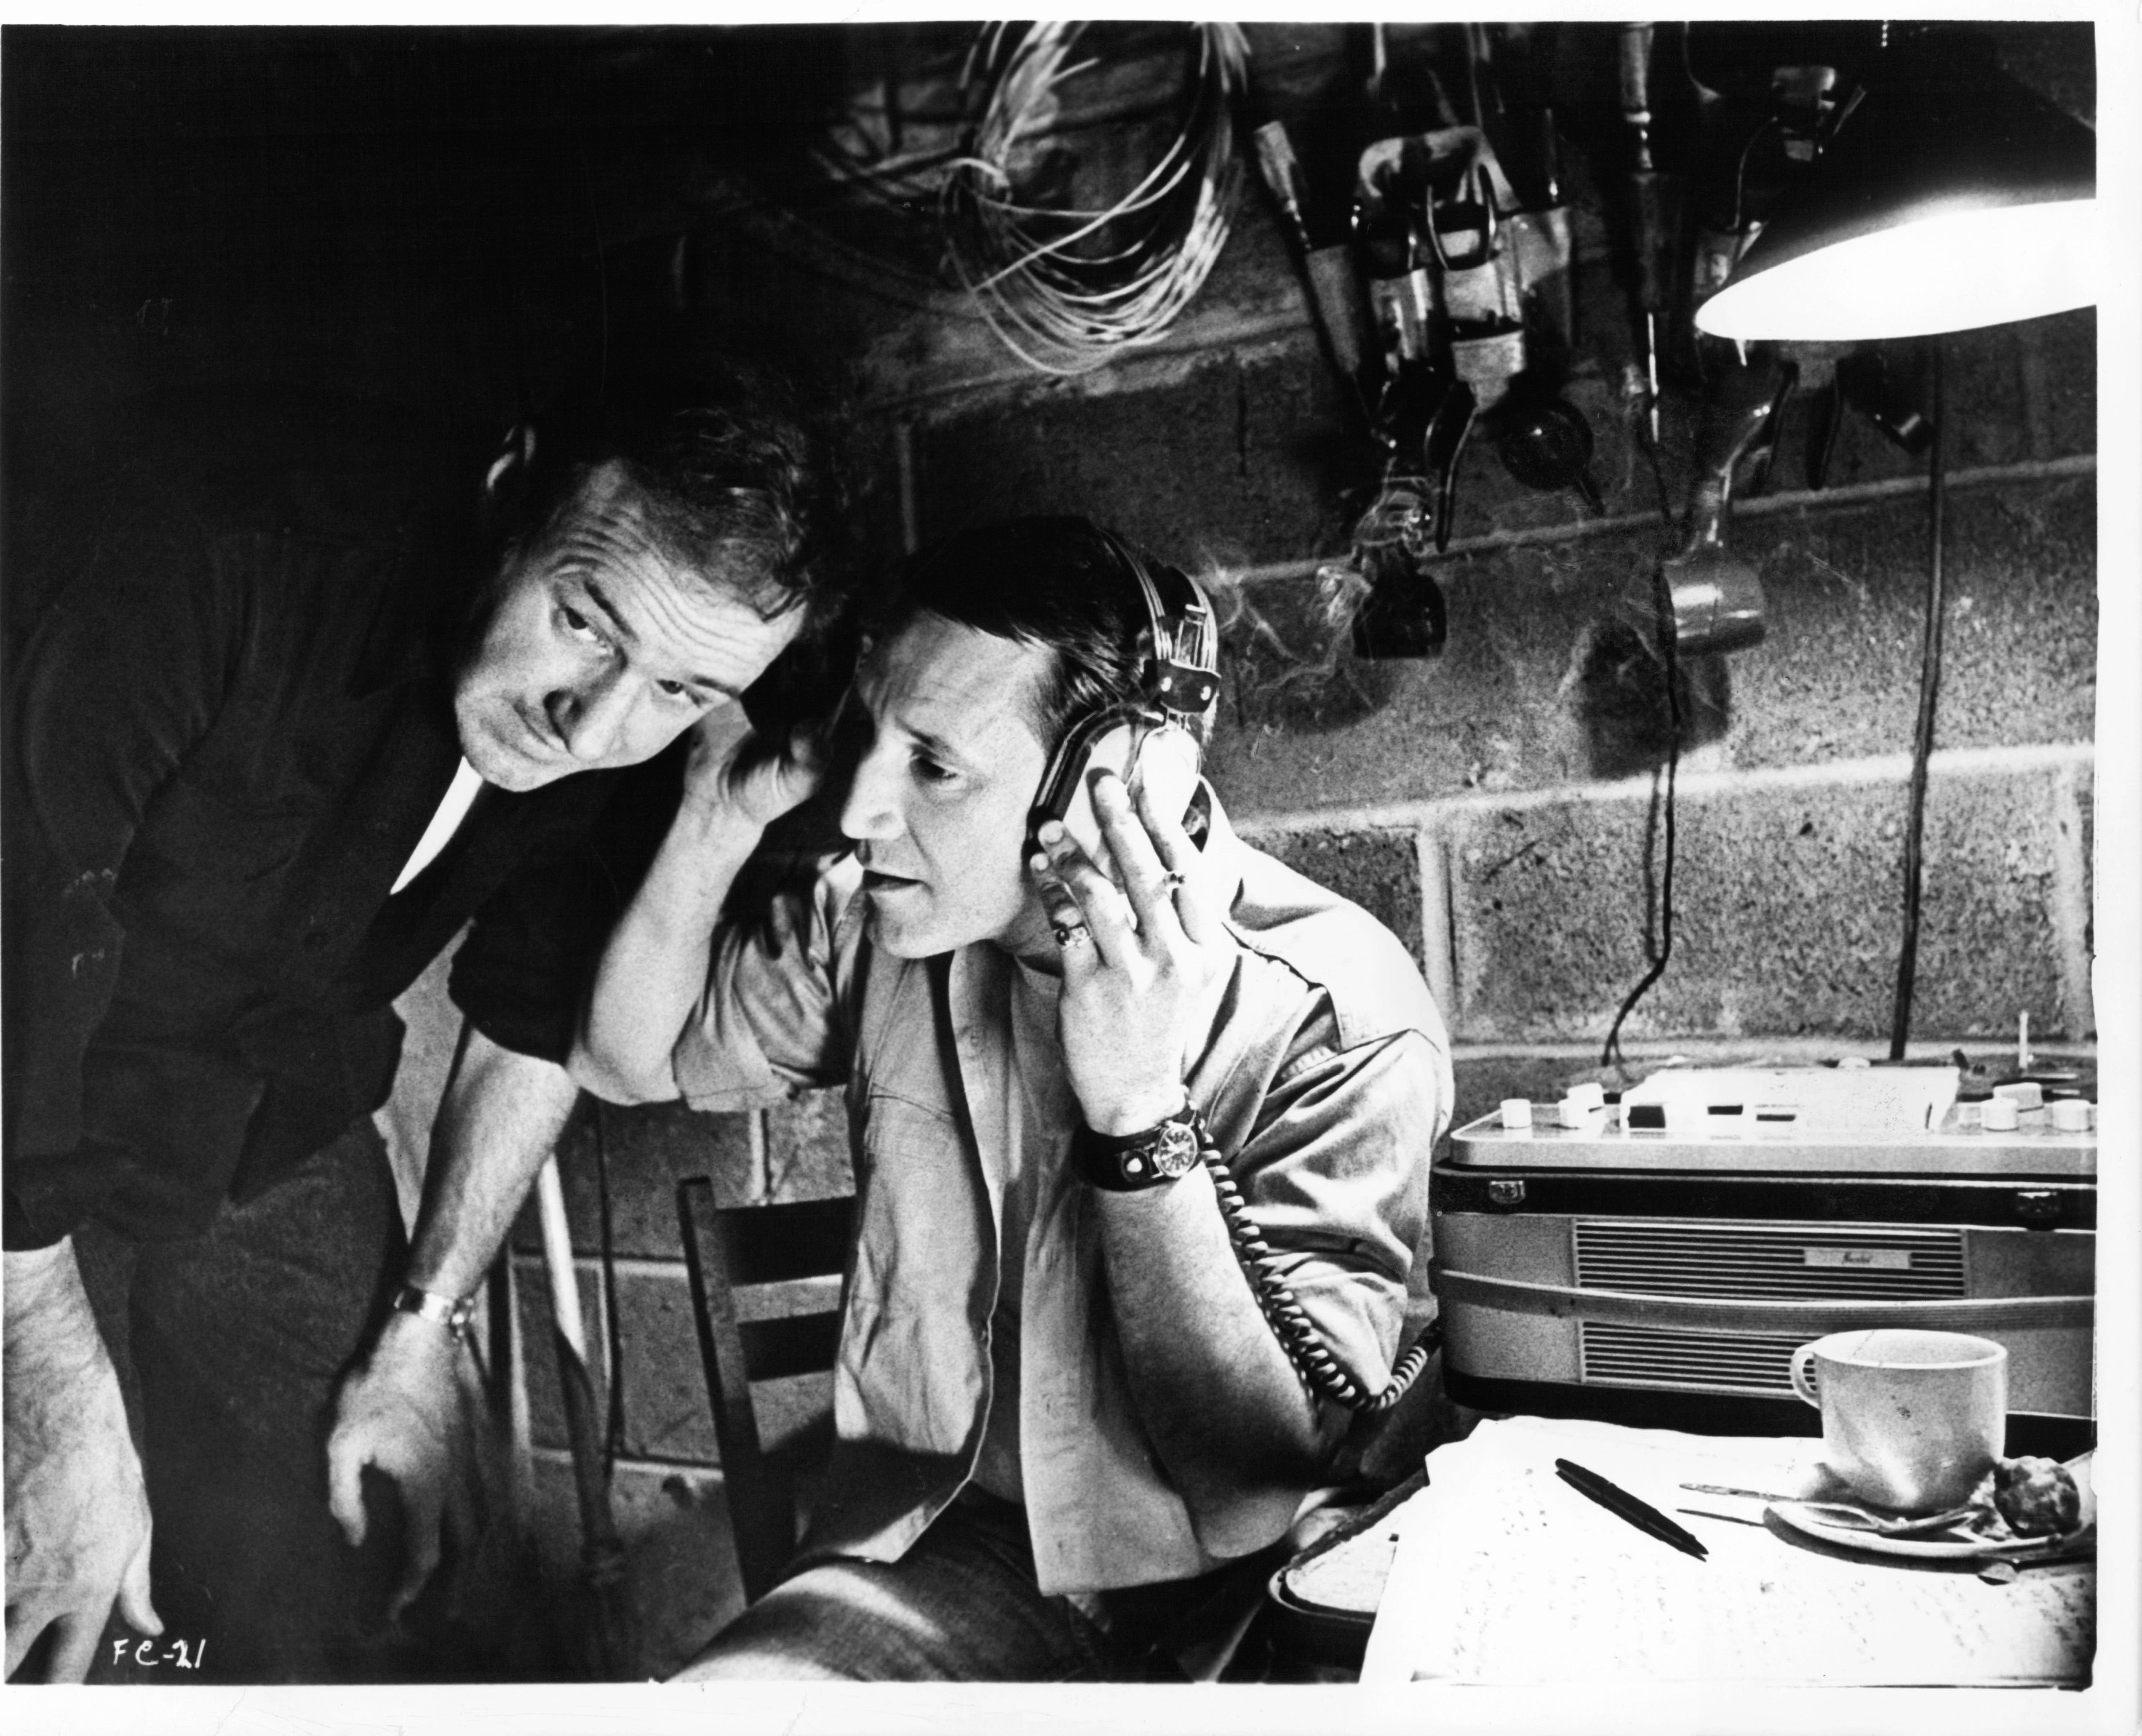 Gene Hackman and Roy Scheider in a scene from the 1971 film 'The French Connection' | Source: Getty Images